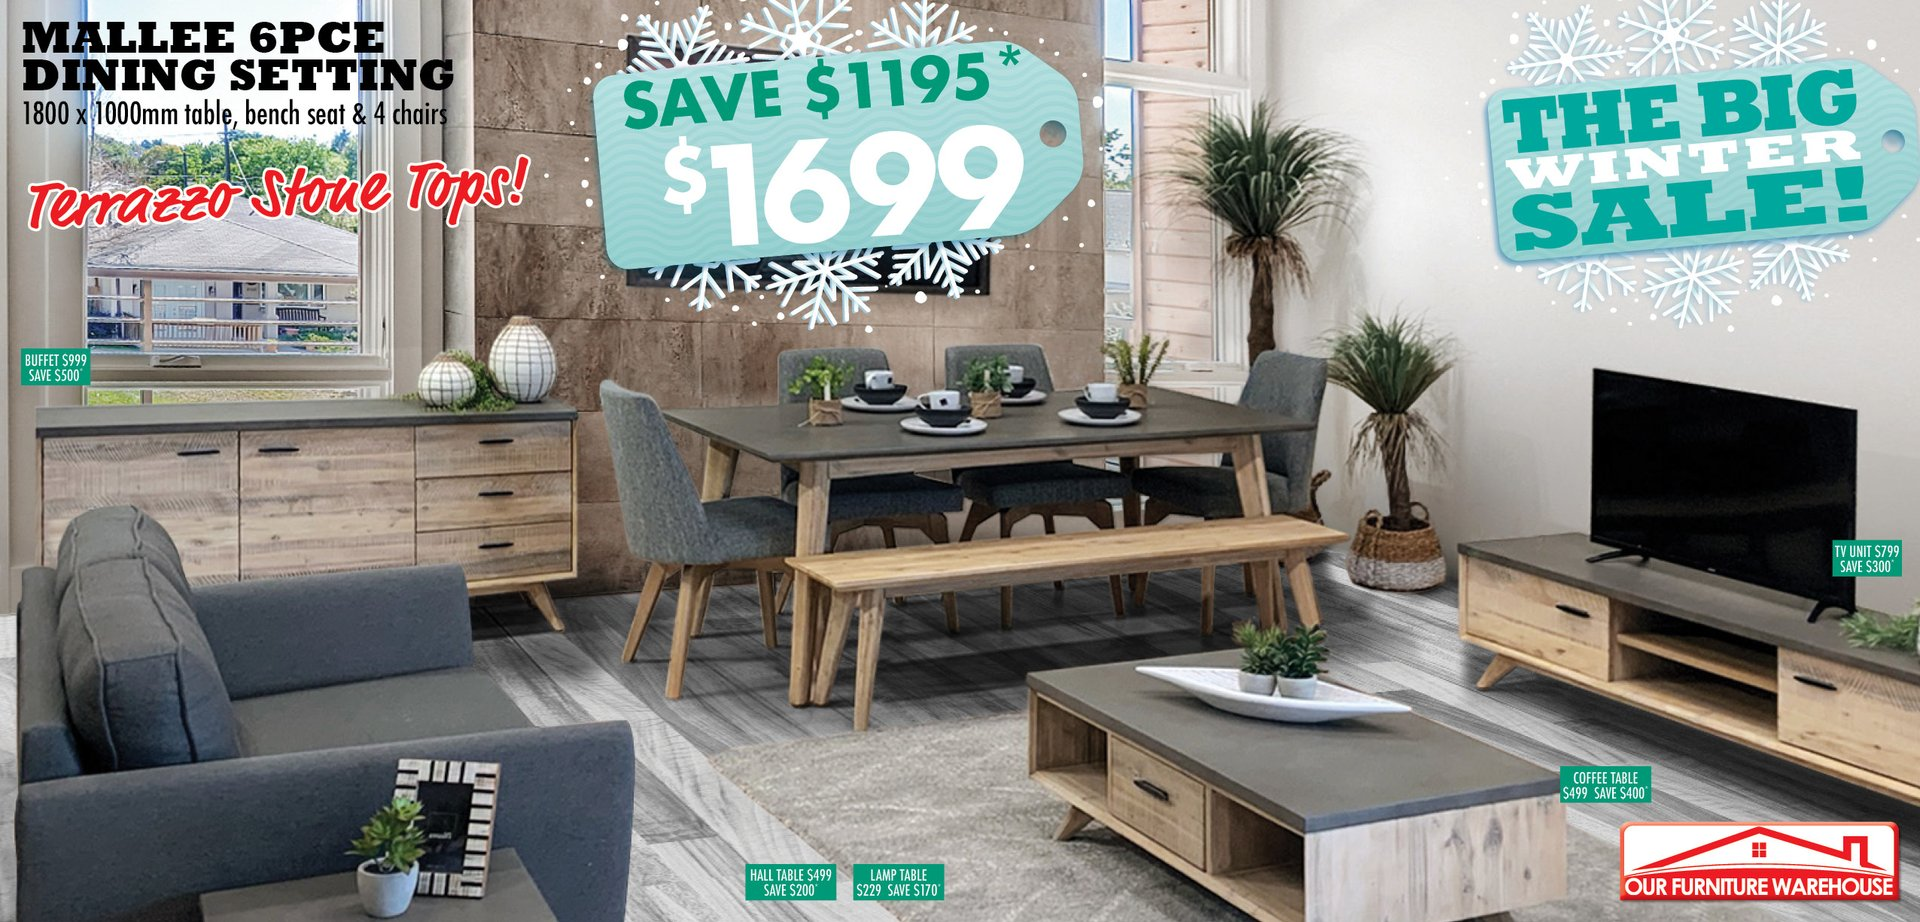 Best Price Furniture Online Store | Furniture Warehouse In Adelaide U2013 Our Furniture  Warehouse